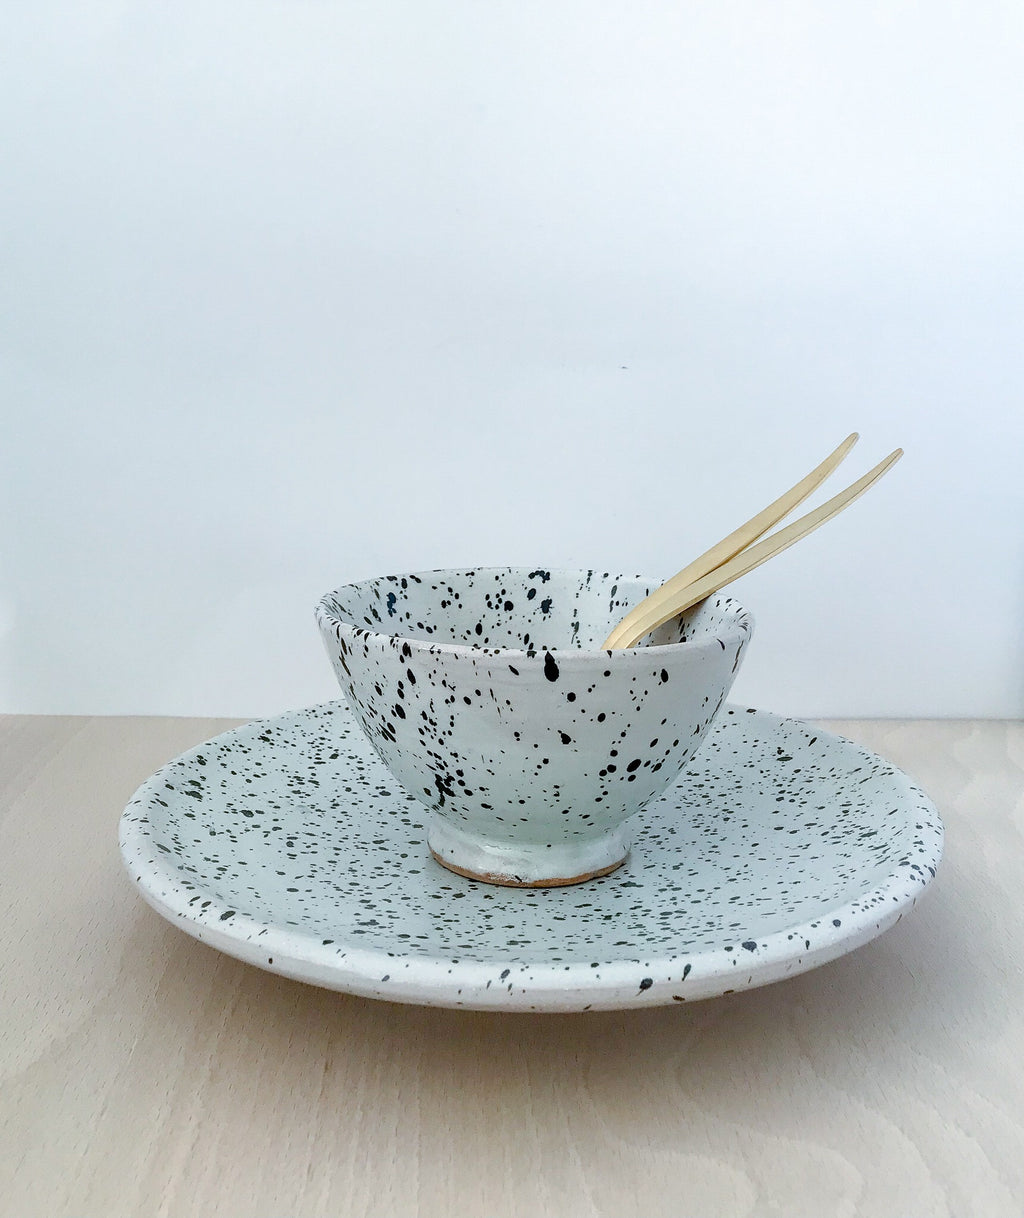 Ceramic Speckled Bowl